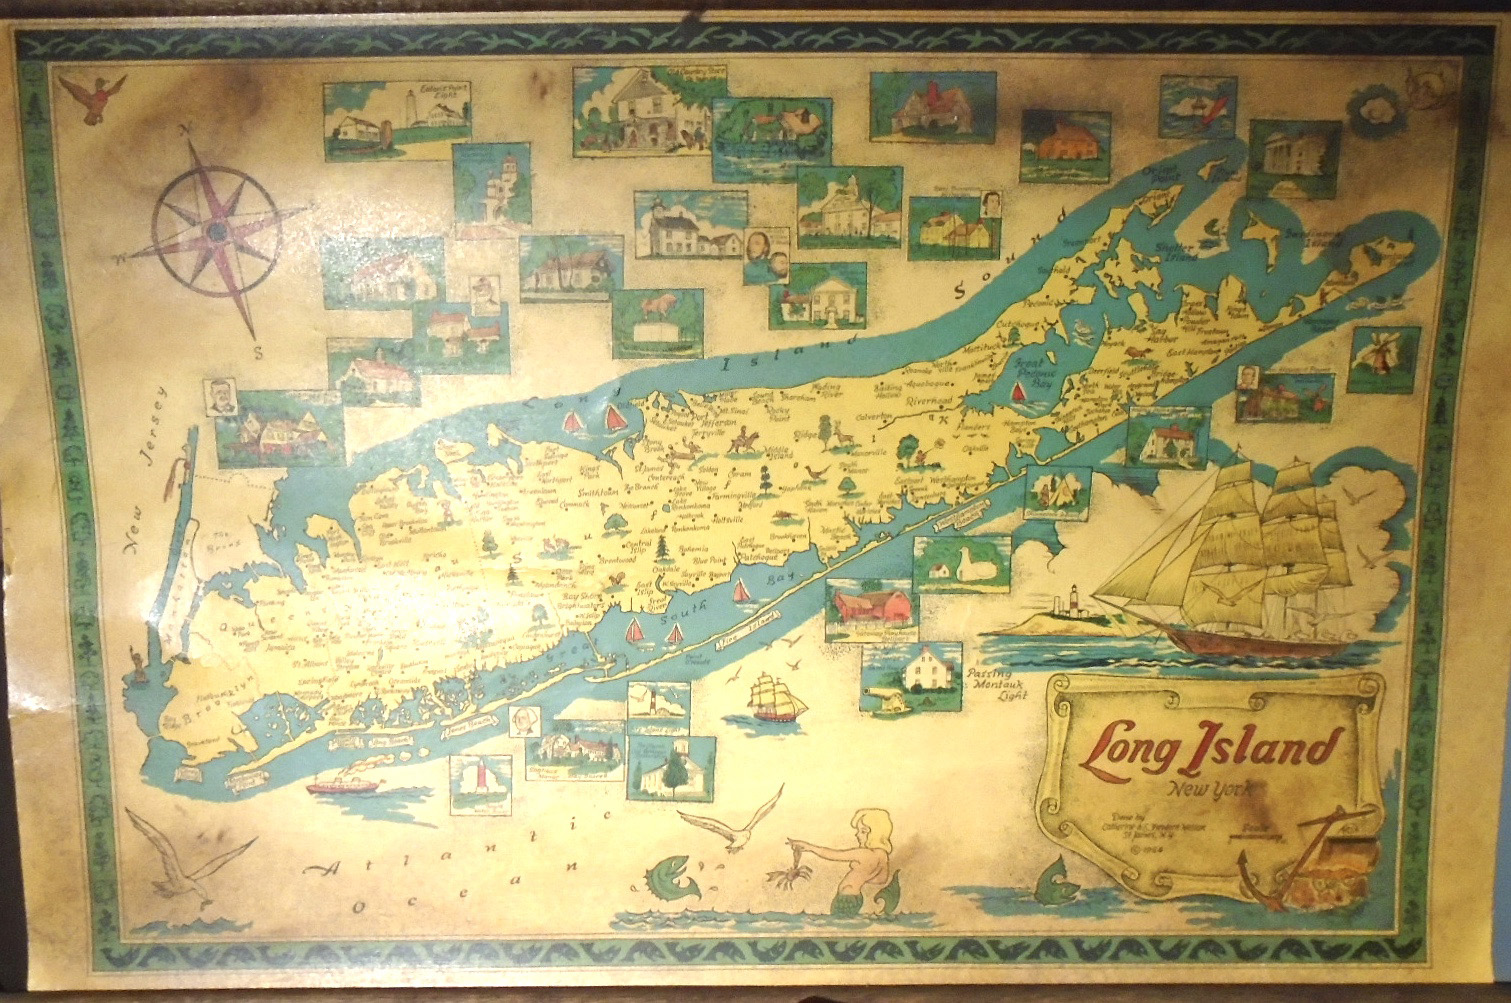 Map Of New York And Long Island.Long Island New York Small Wall Map By Catherine And Theodore Nelson On Yesterday S Gallery And Babylon Revisited Rare Books